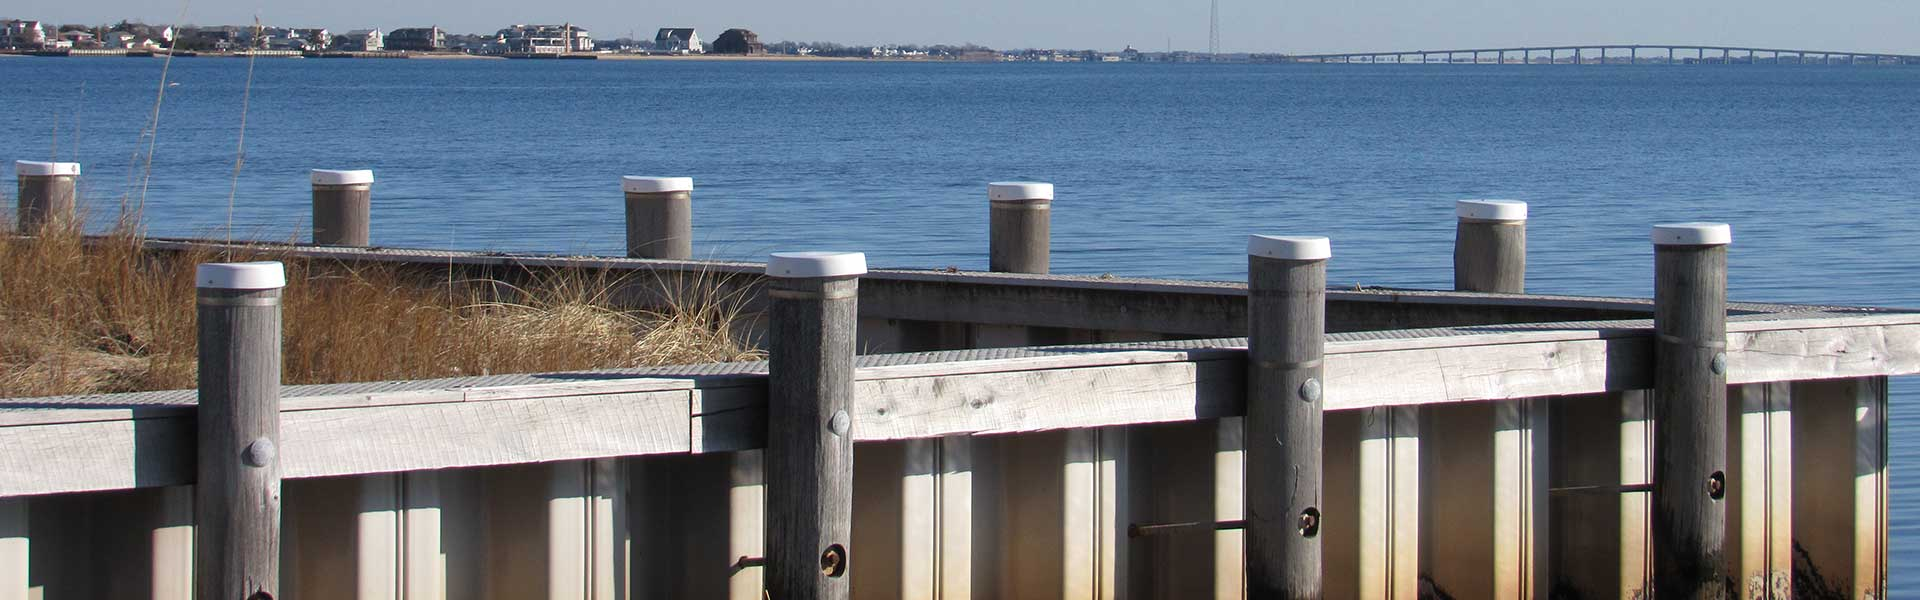 Marine dock piles and lumber